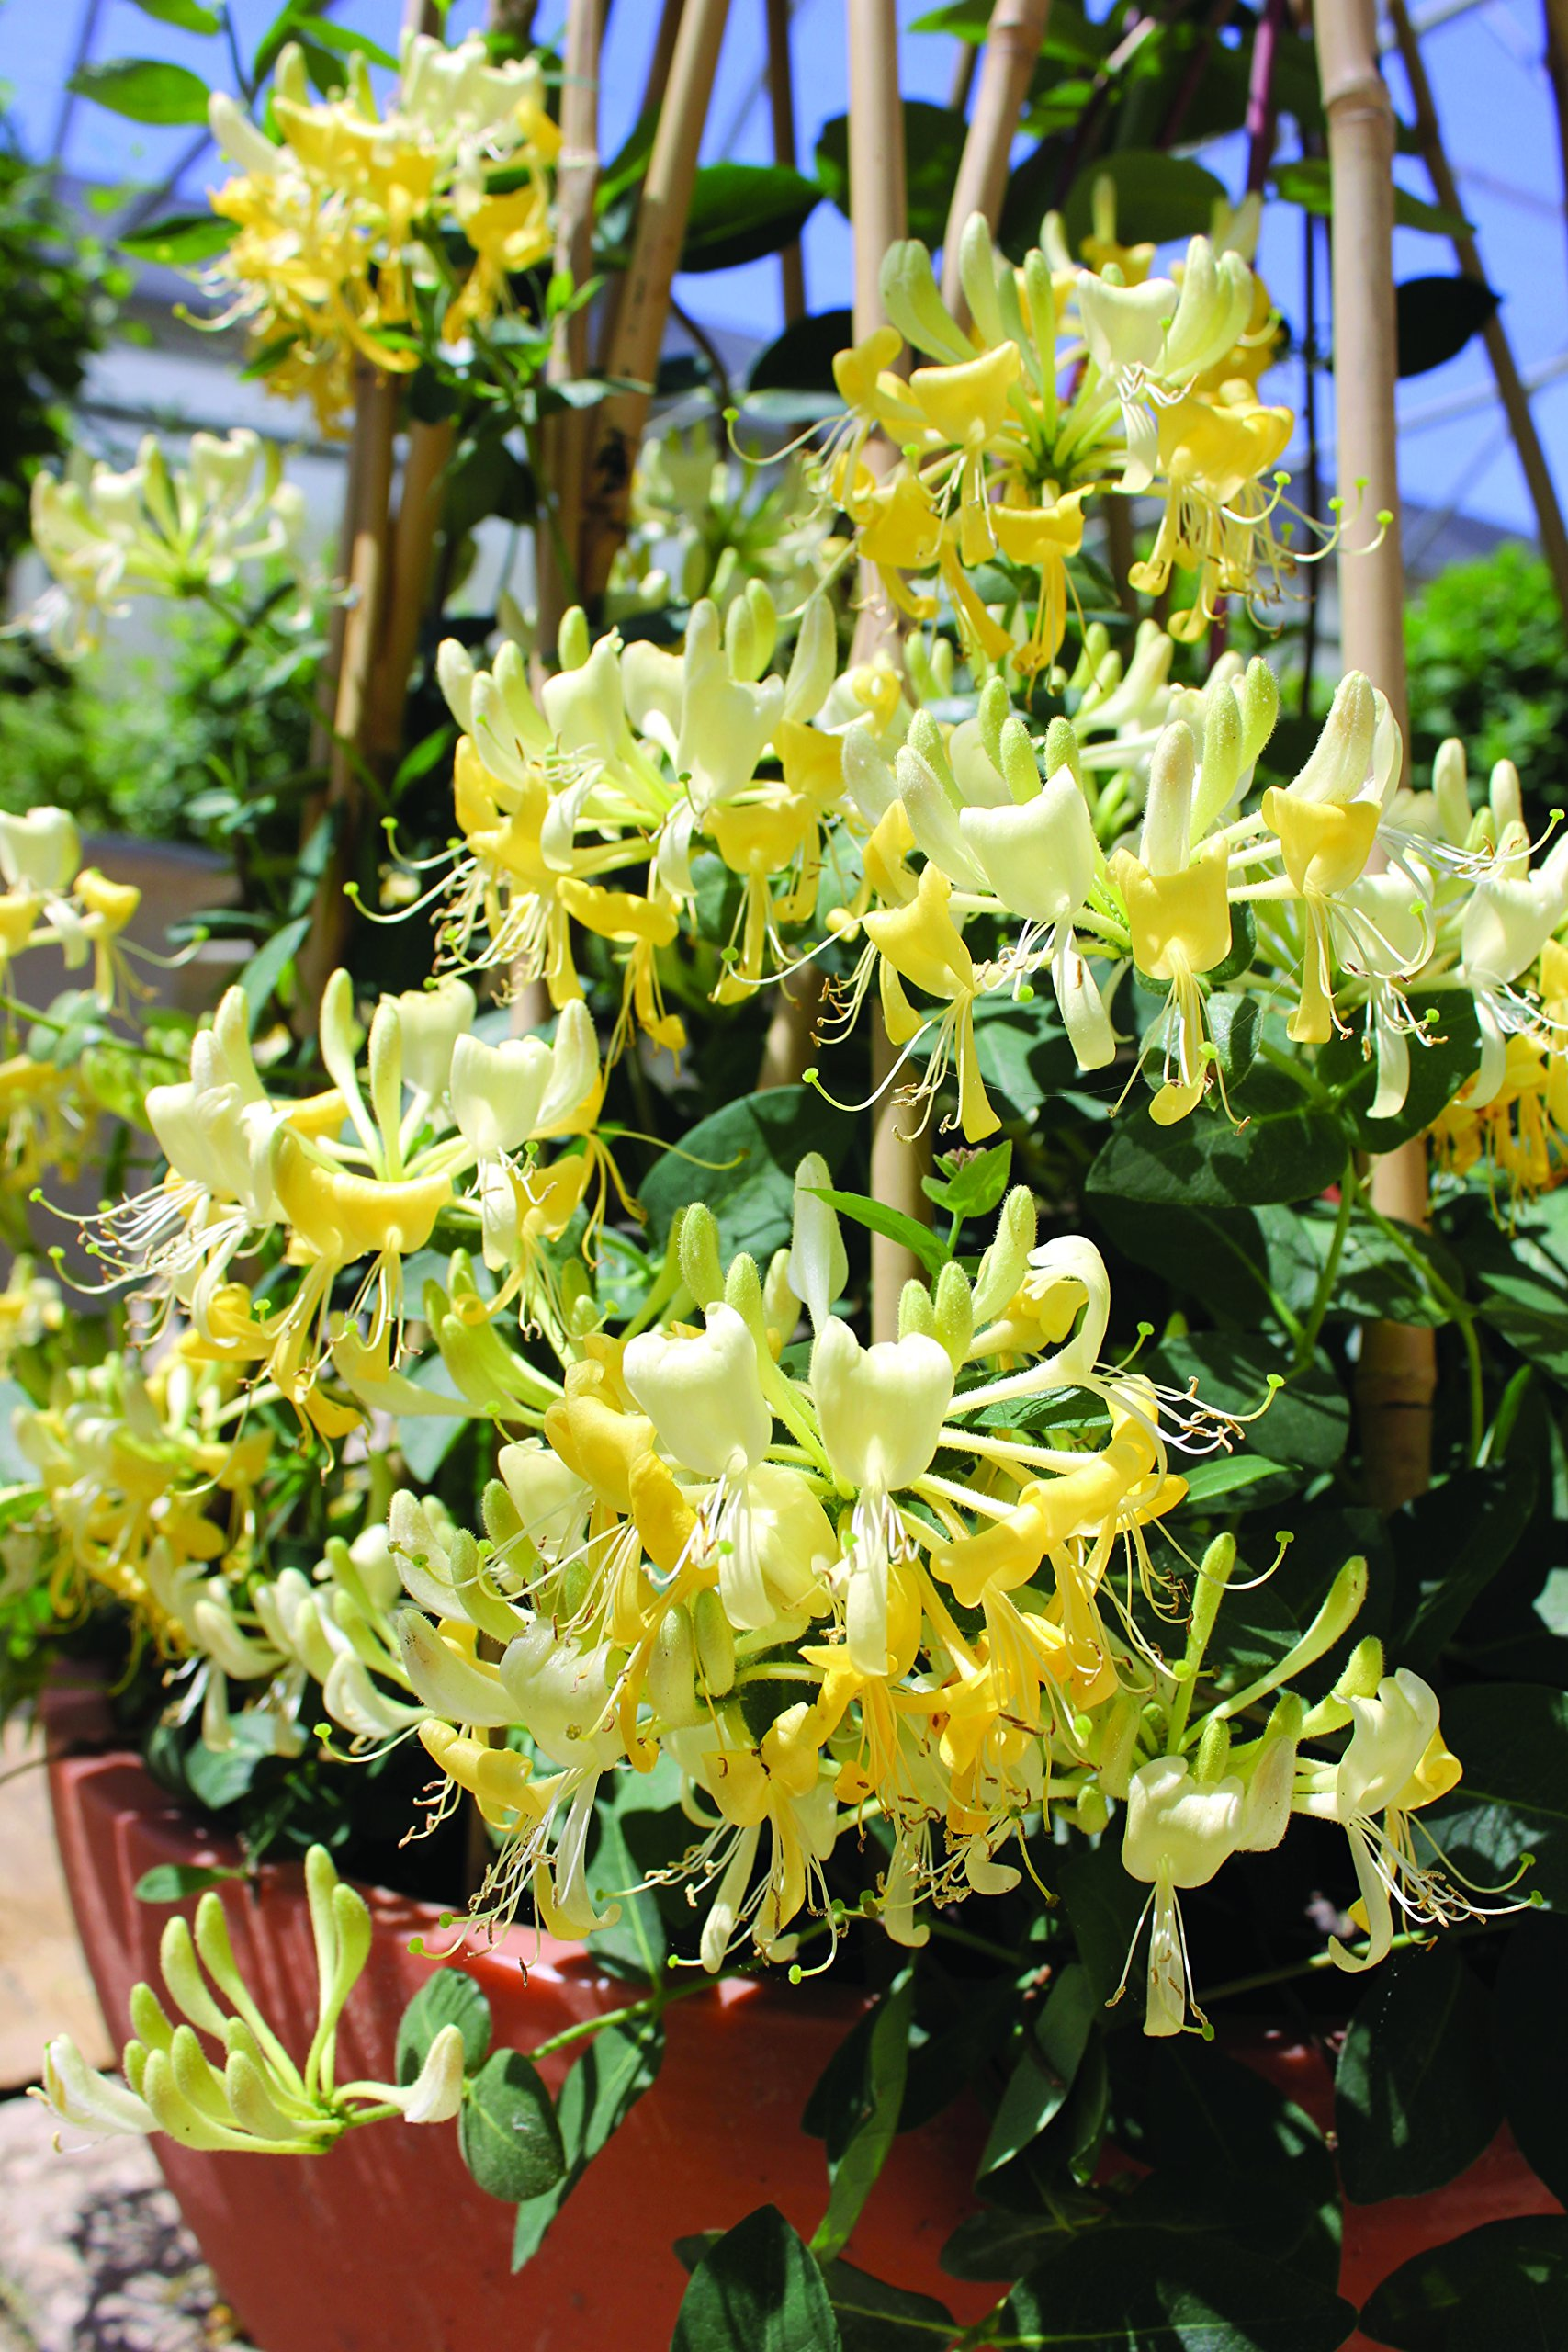 Scentsation Honeysuckle Lonicera Live Shrub Yellow Flowers And